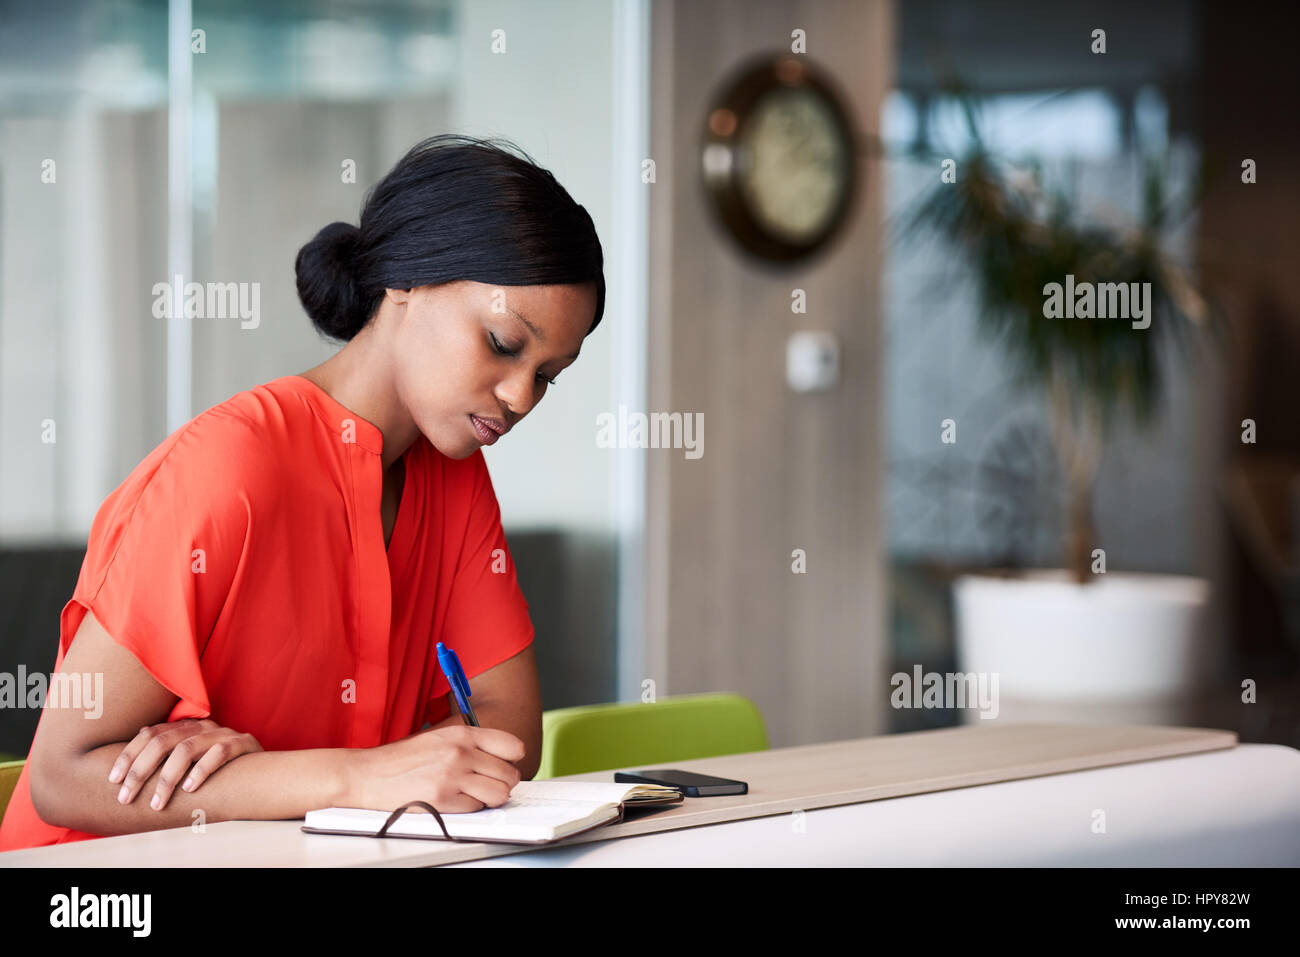 Authentic image of African American woman busy using a pen to write down her shedule that she has planned out in Stock Photo